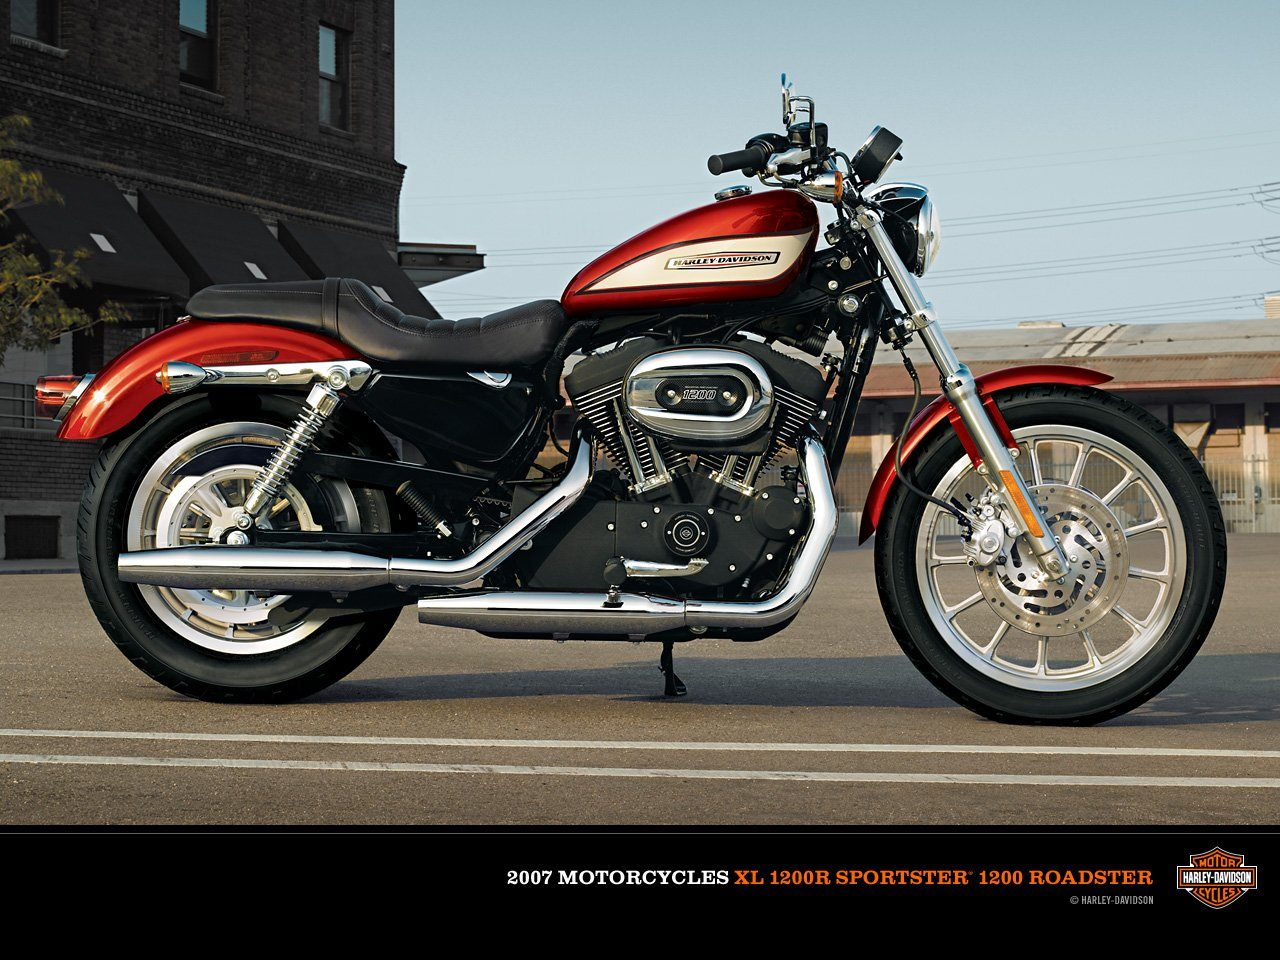 2007 Harley Davidson Xl1200r Sportster Roadster Pics Specs And Information Onlymotorbikes Com